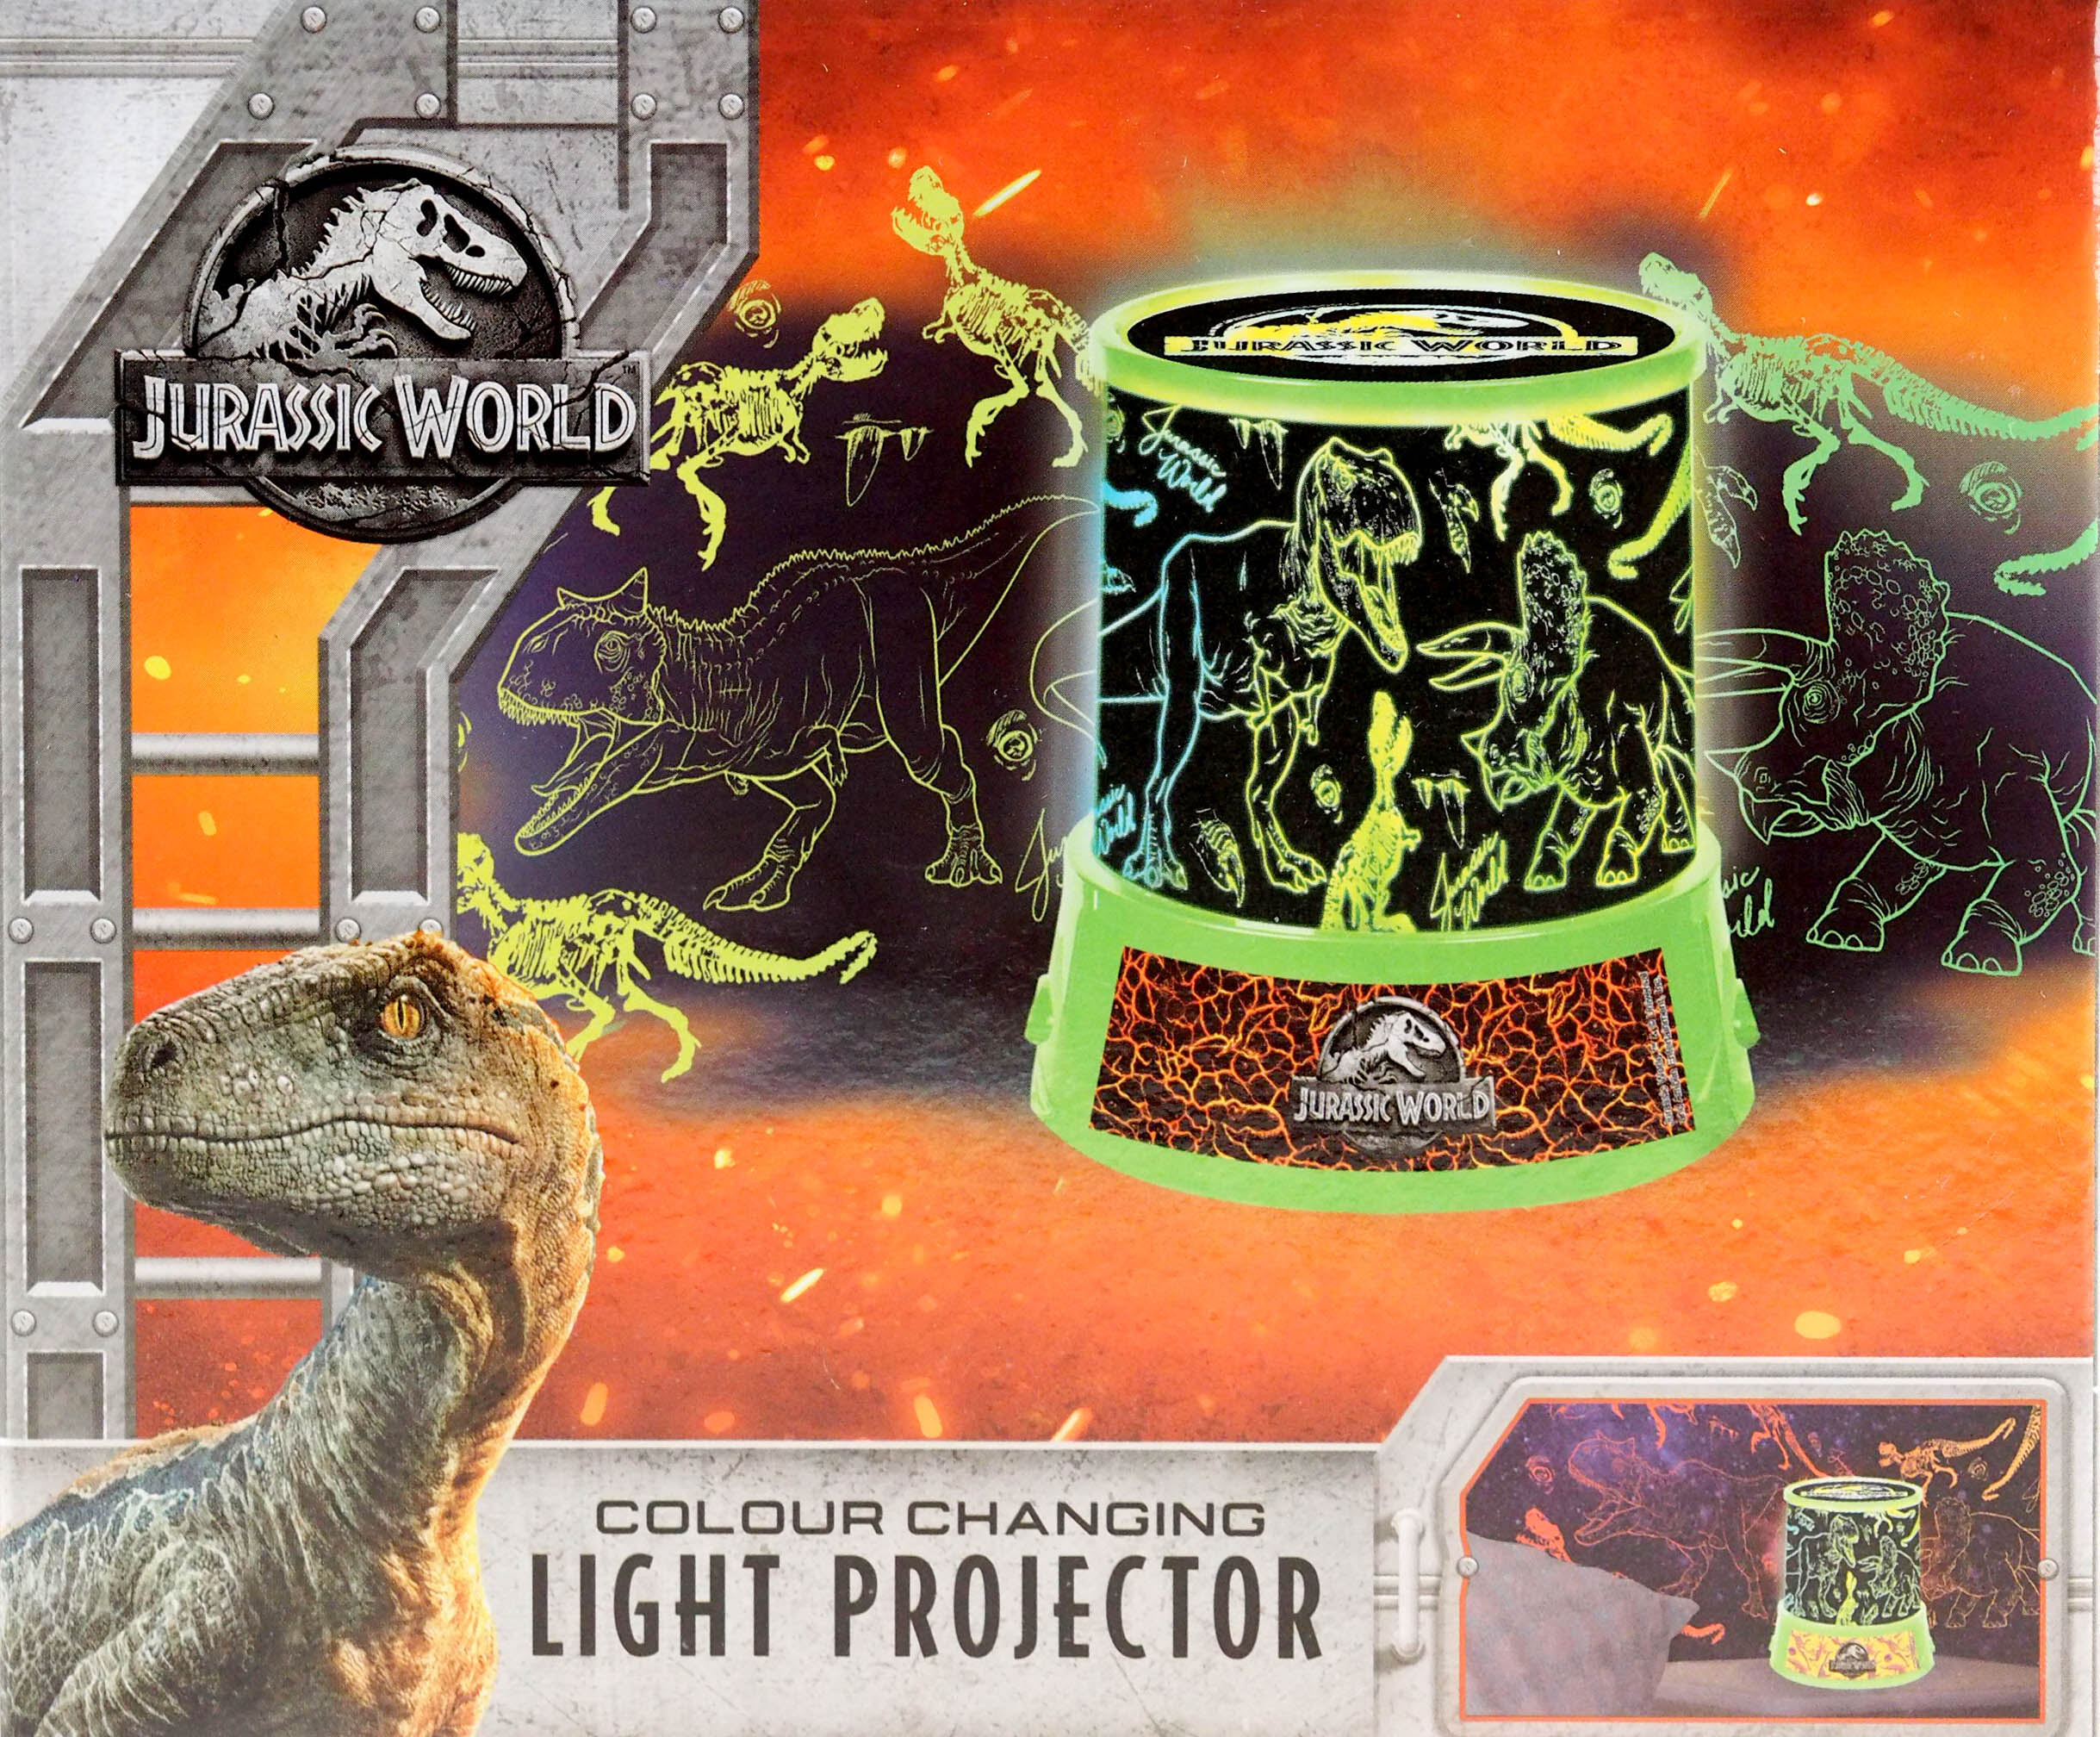 Jurassic World Dinosaur Led Light Projector Night Light